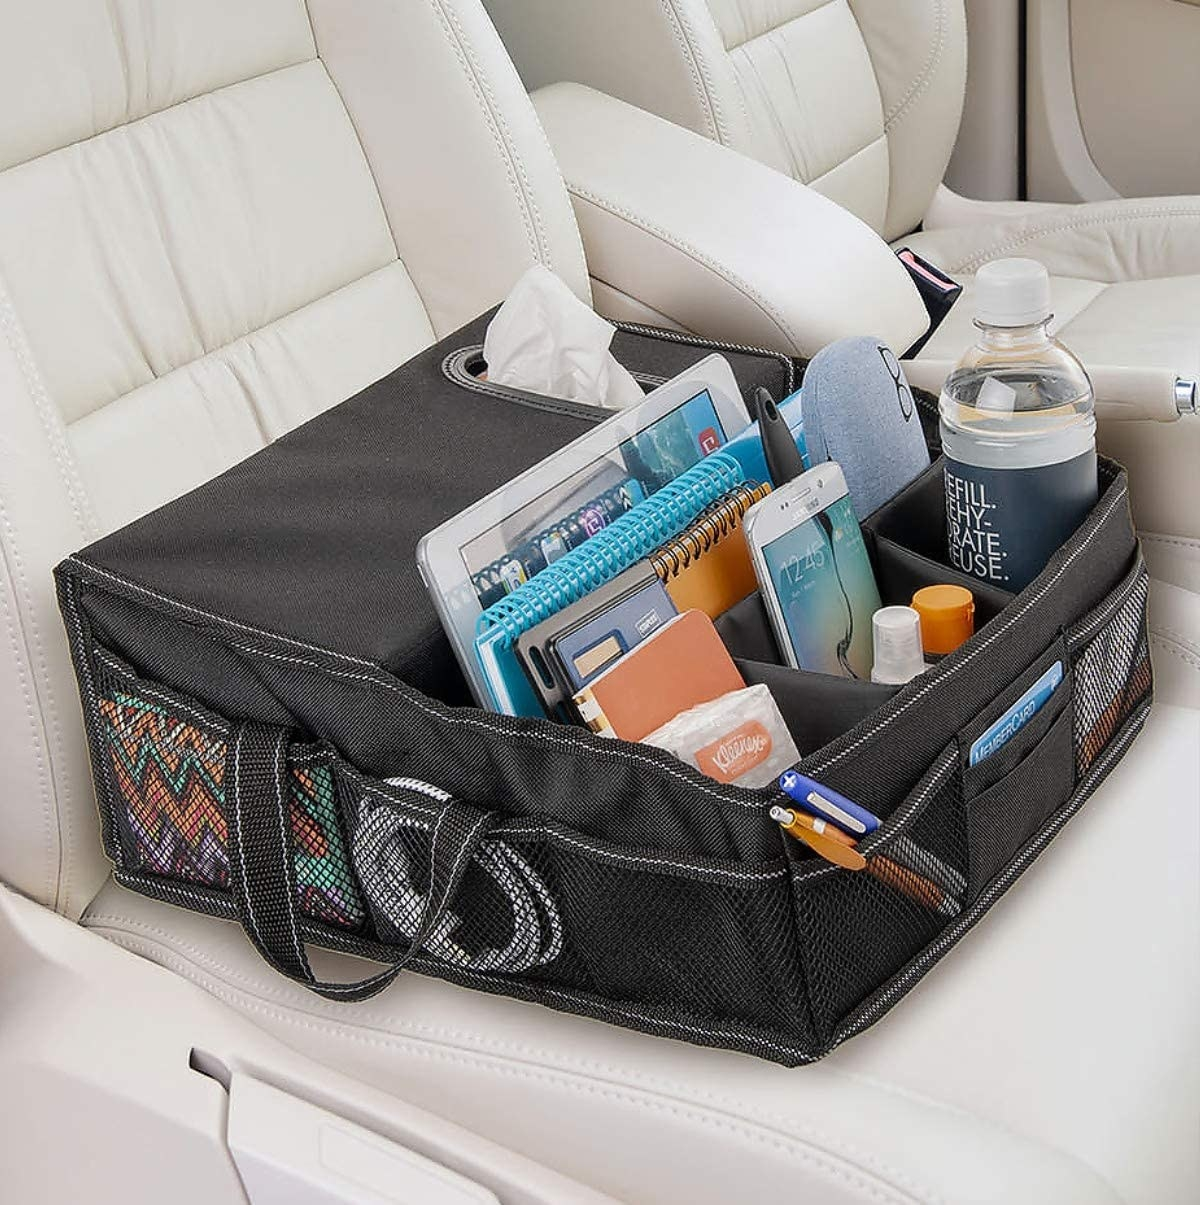 A front seat organizer with different compartments for small things like phones, bottles, and glasses